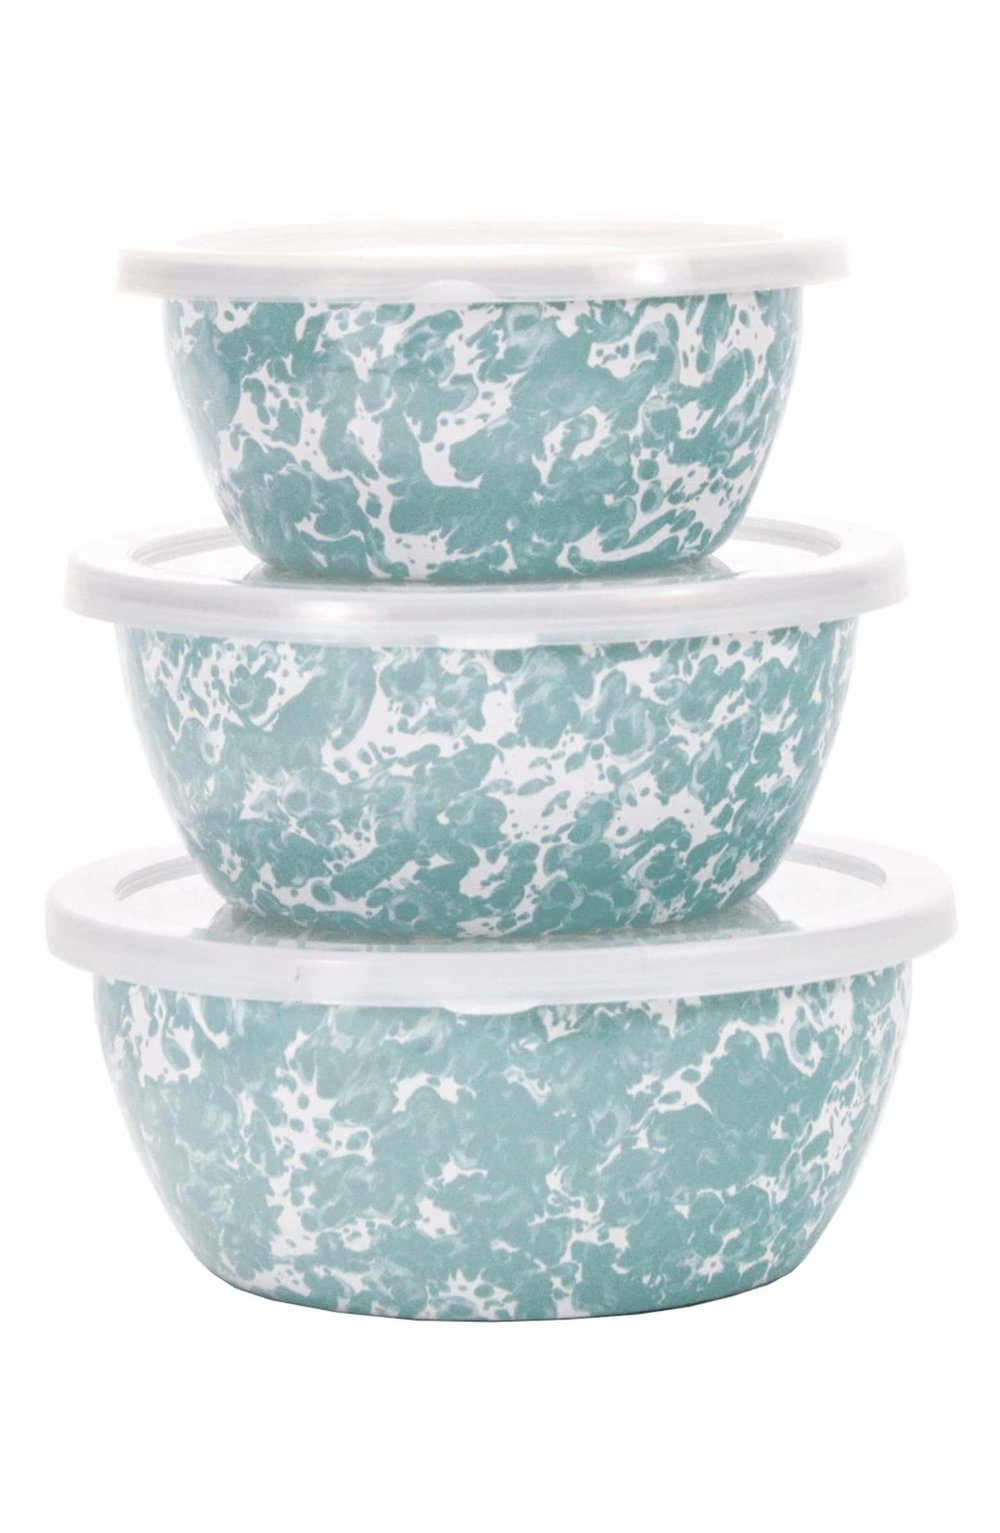 Golden Rabbit Set of 3 Nesting Bowls - These nesting bowls are so pretty and come in this gorgeous sea glass color, red swirl and blue swirl. They are sure to make any counter or fridge pop and are only $31.99.